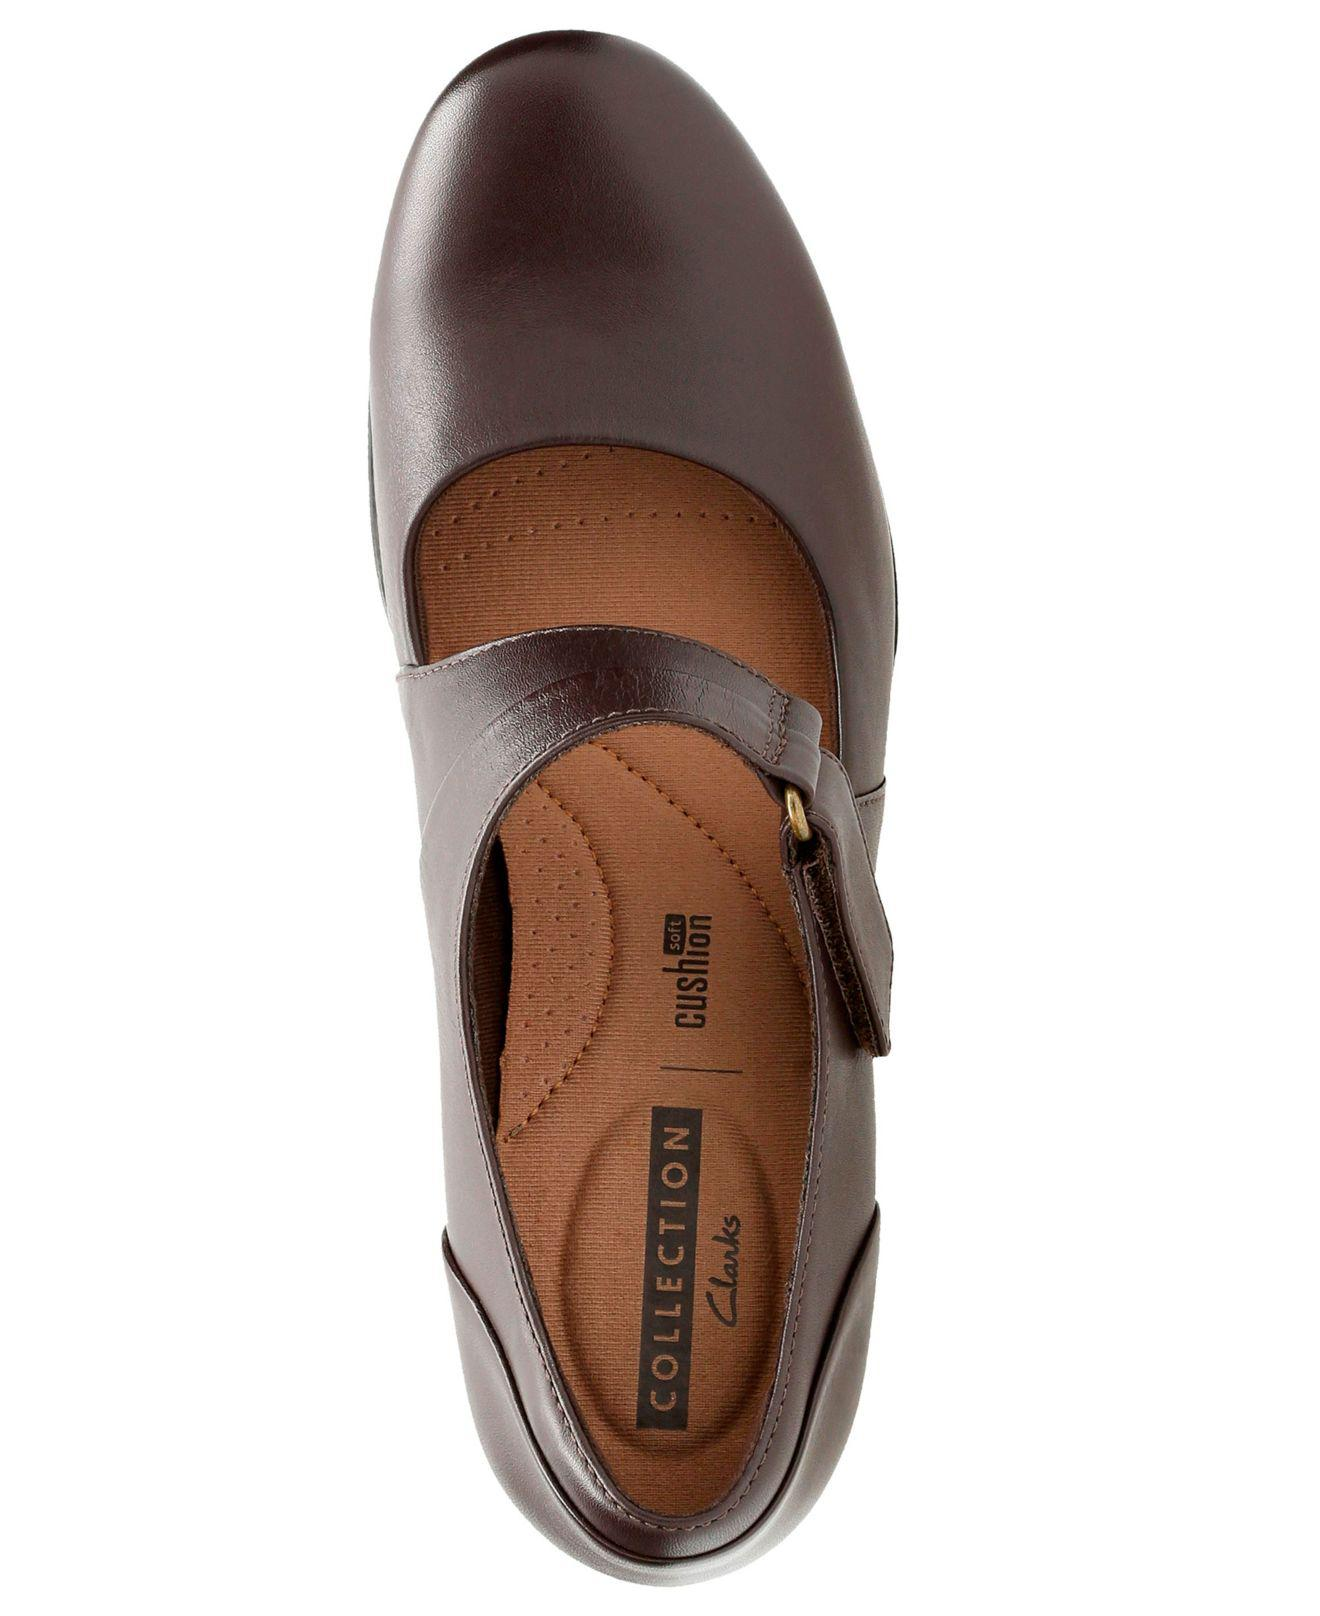 f5c9841f9a Lyst - Clarks Women's Emslie Lulin Mary Jane Pumps in Brown